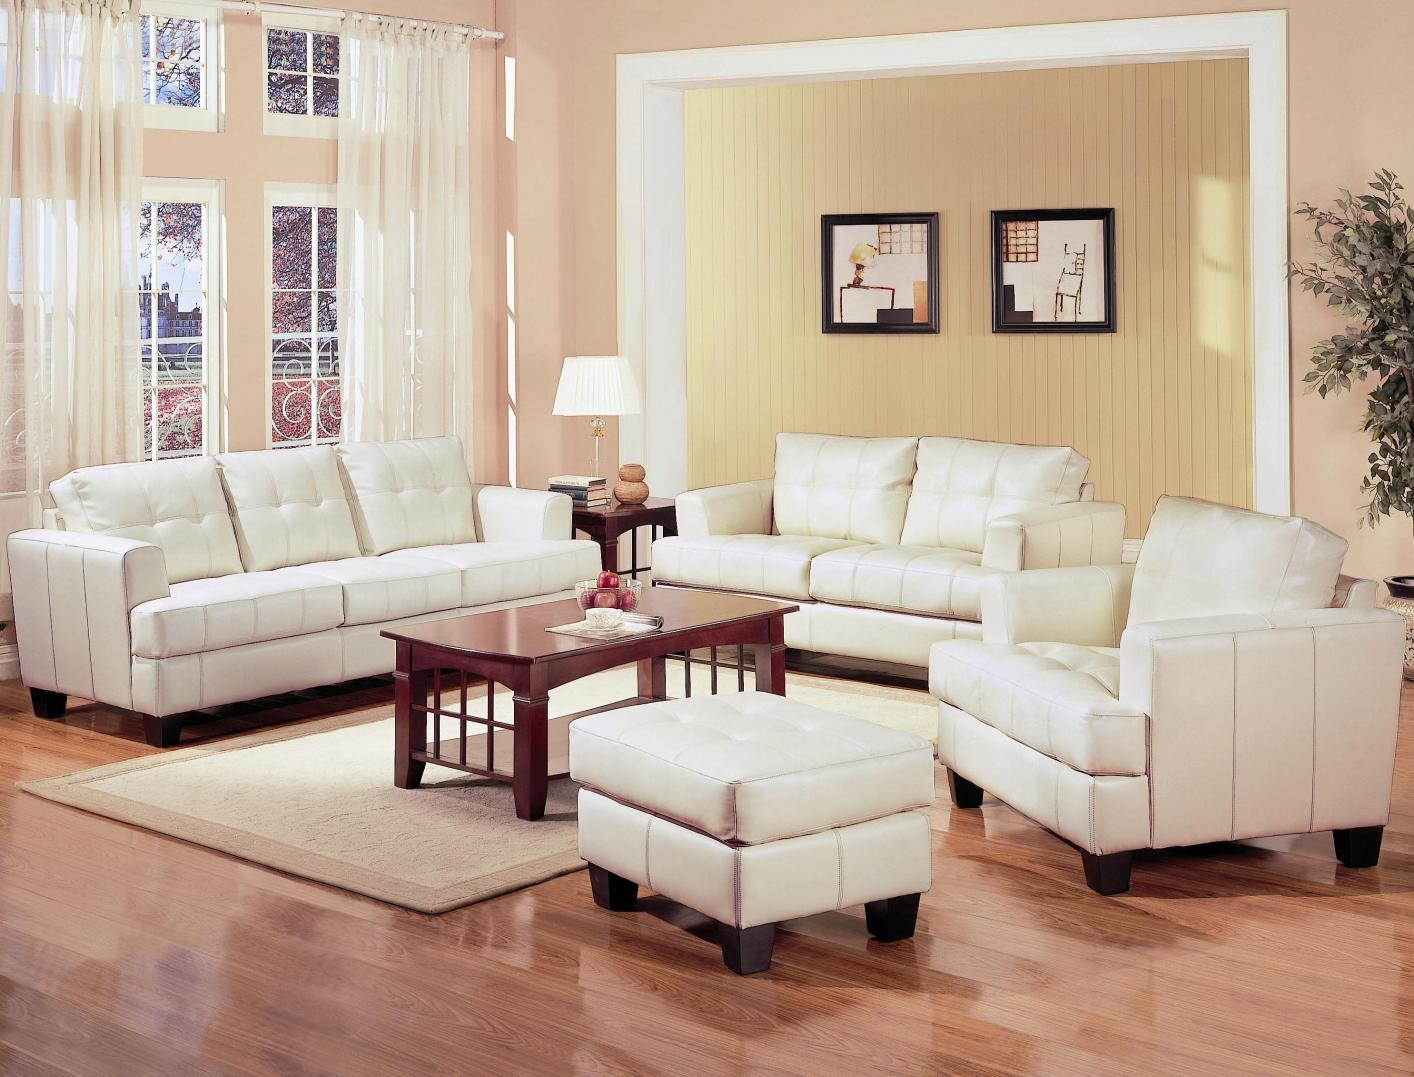 Samuel Beige Leather Sofa Samuel Beige Leather Sofa ...